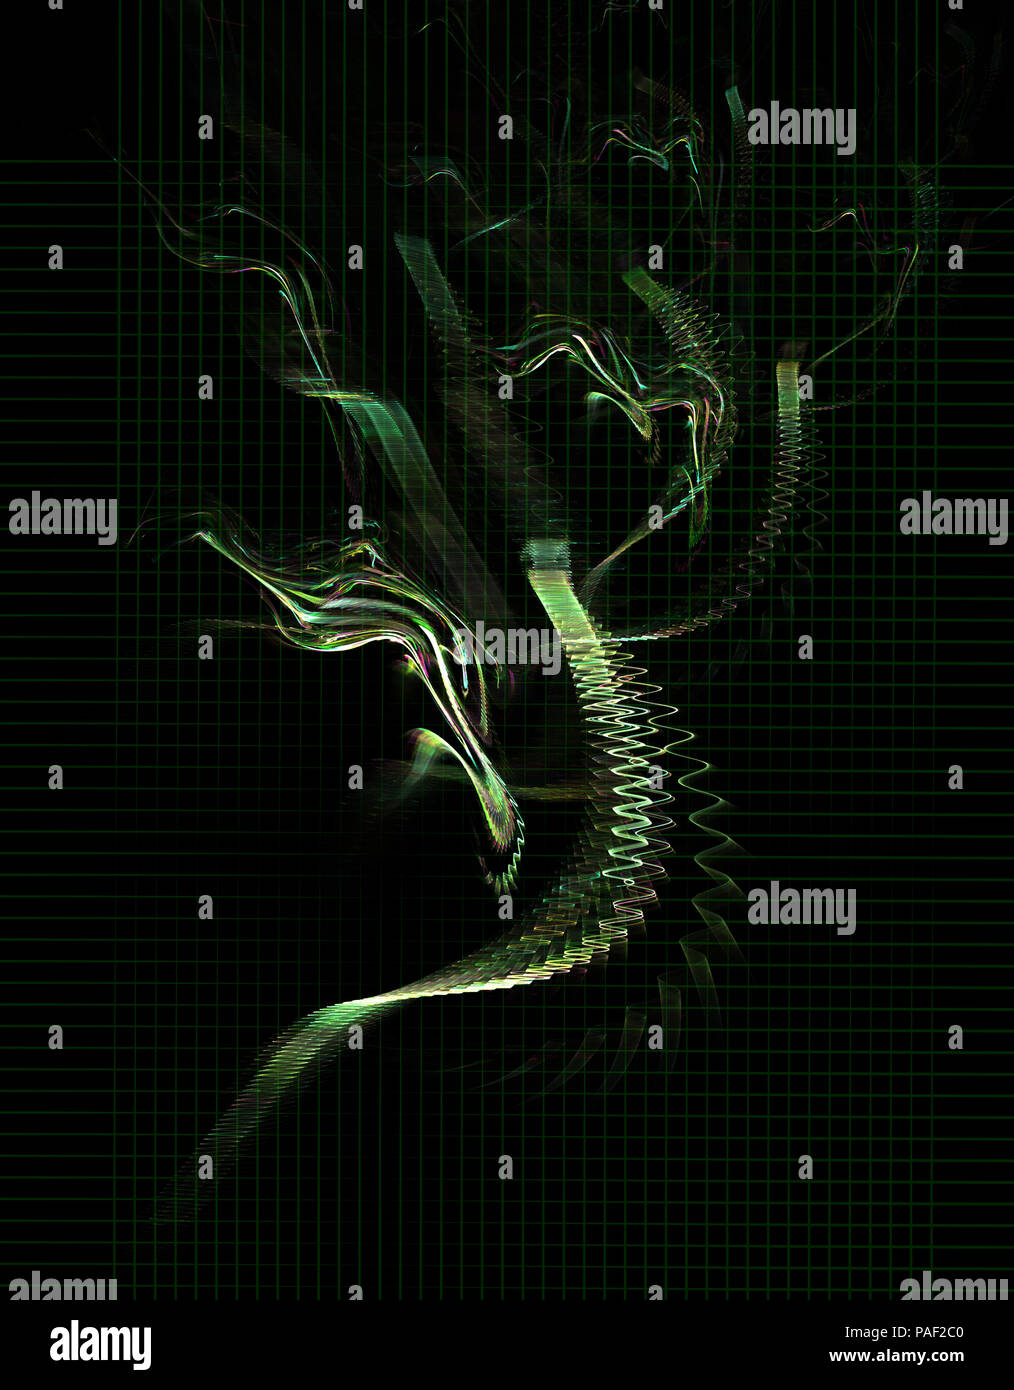 Green wave signal bunch abstract, vertical, over black background - Stock Image